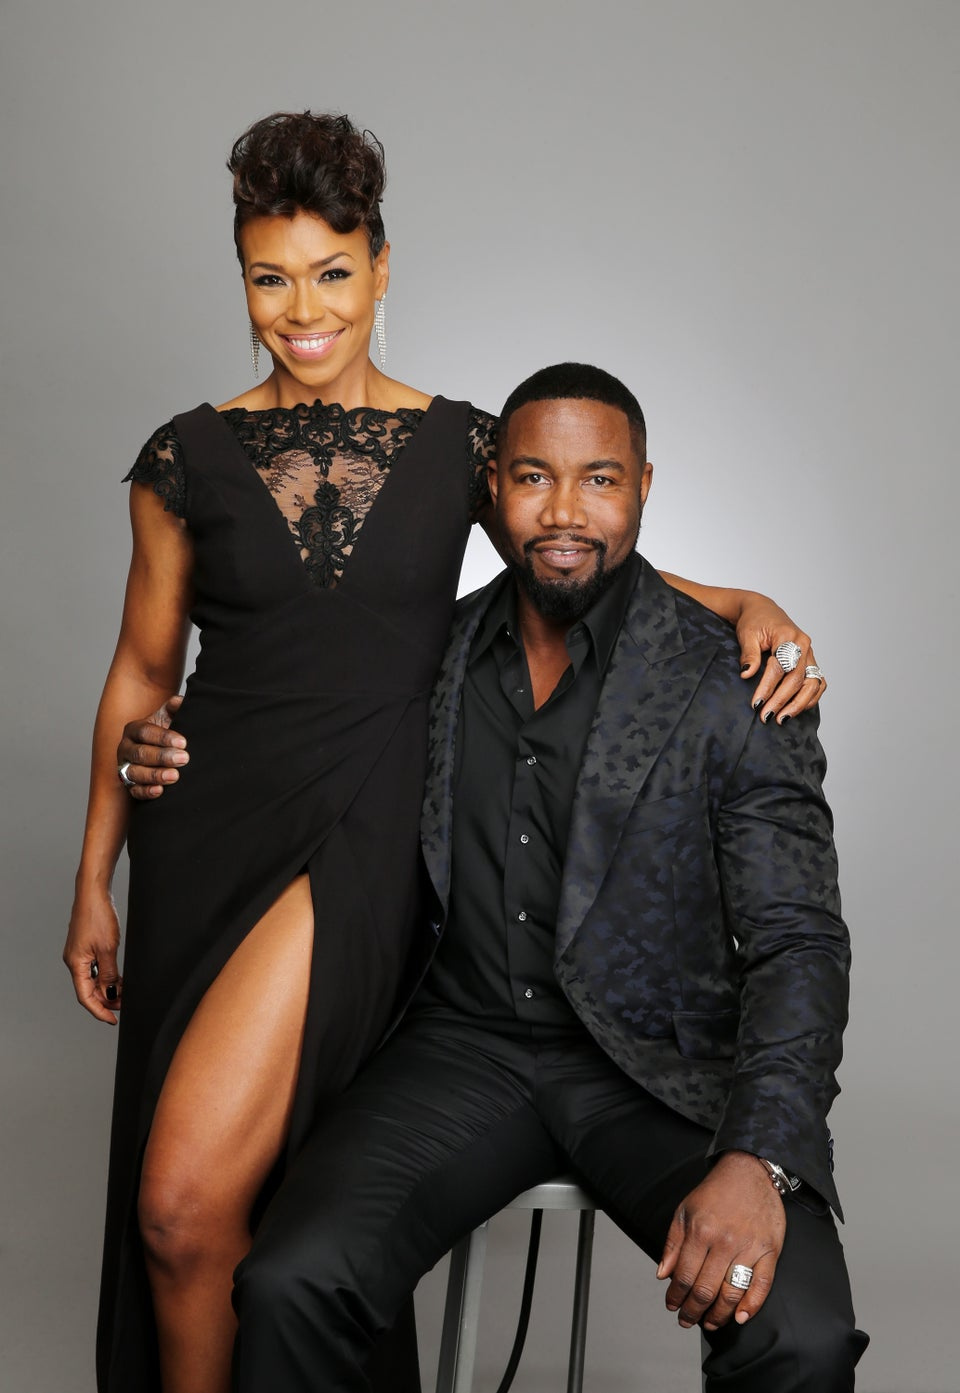 Michael Jai White Celebrates Second Wedding Anniversary: 'My Life Is the Best It's Ever Been'